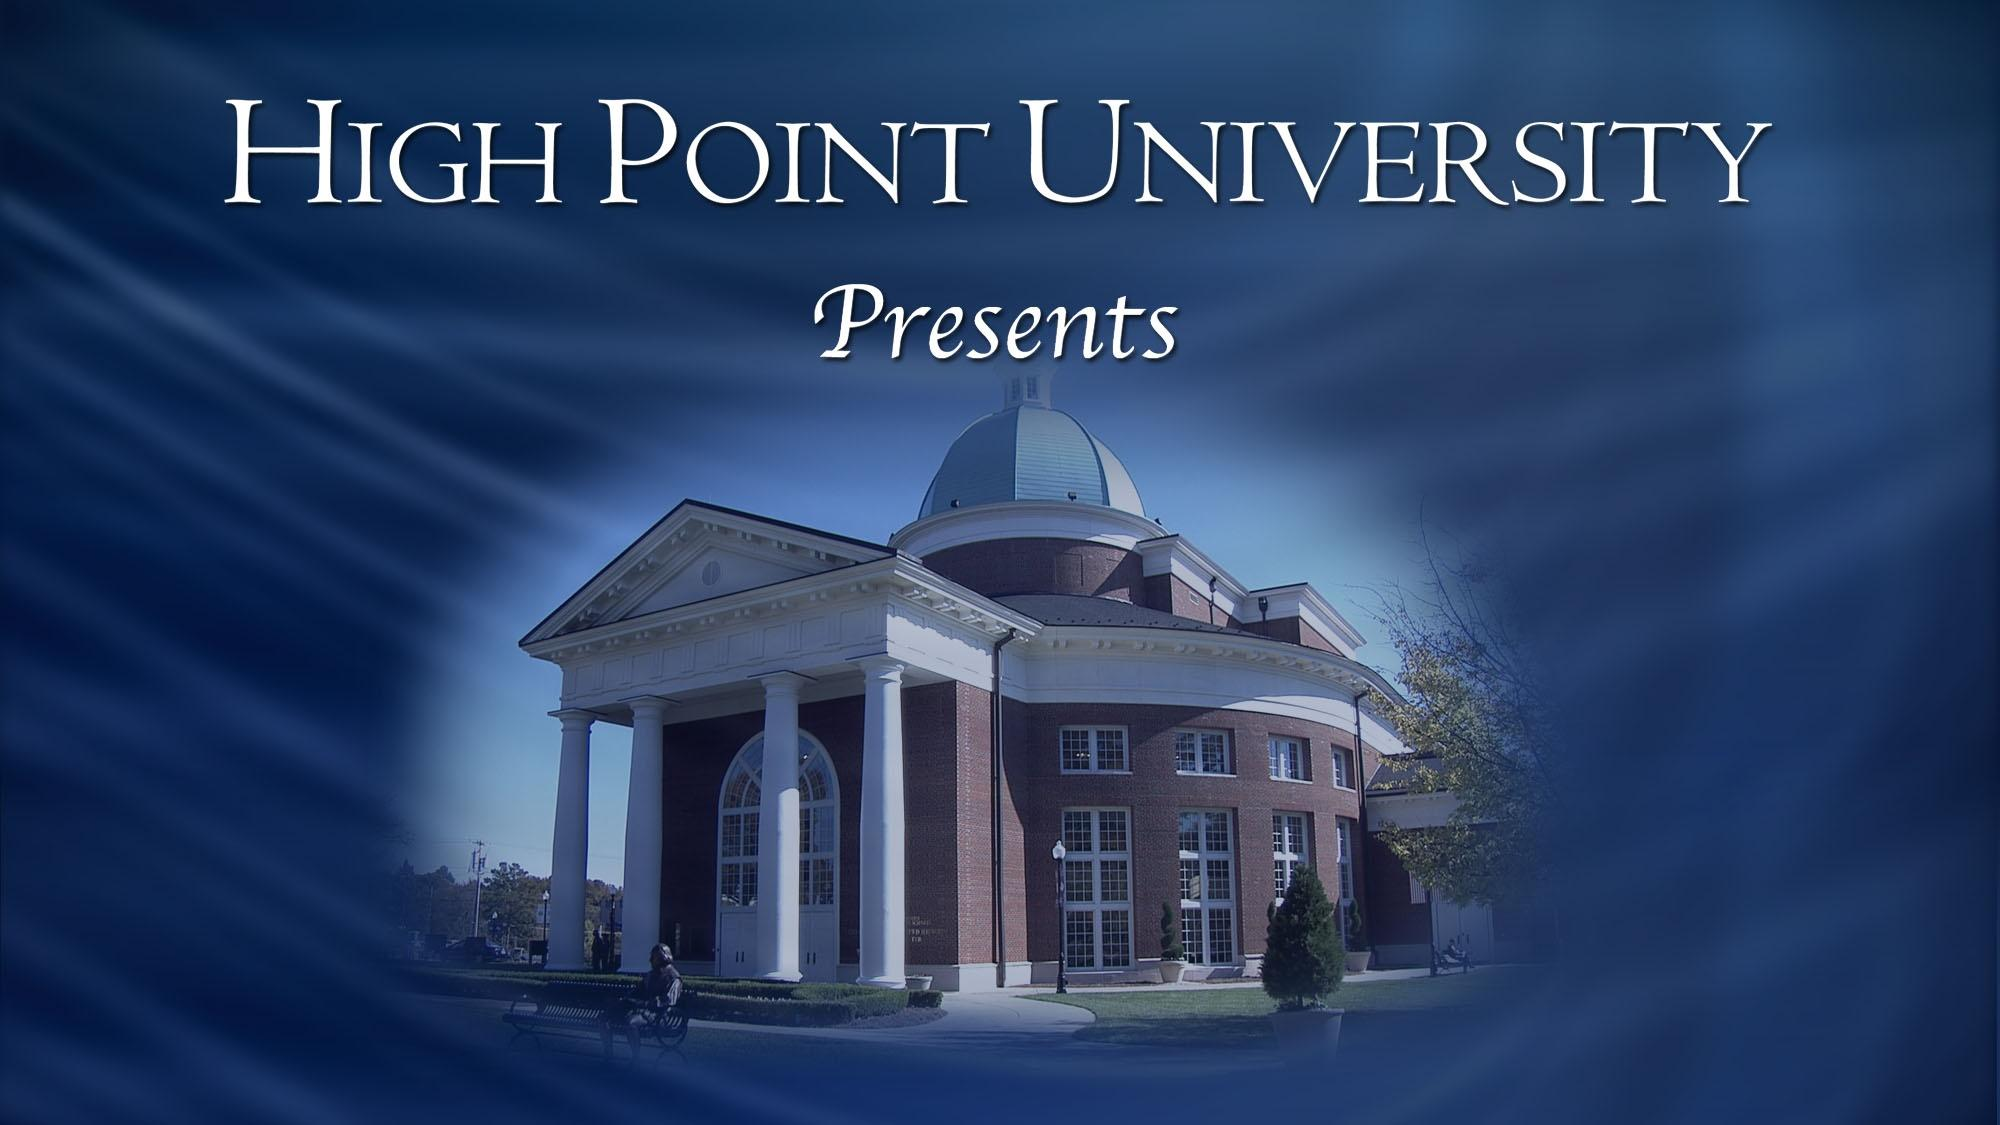 High Point Unoversity Presents